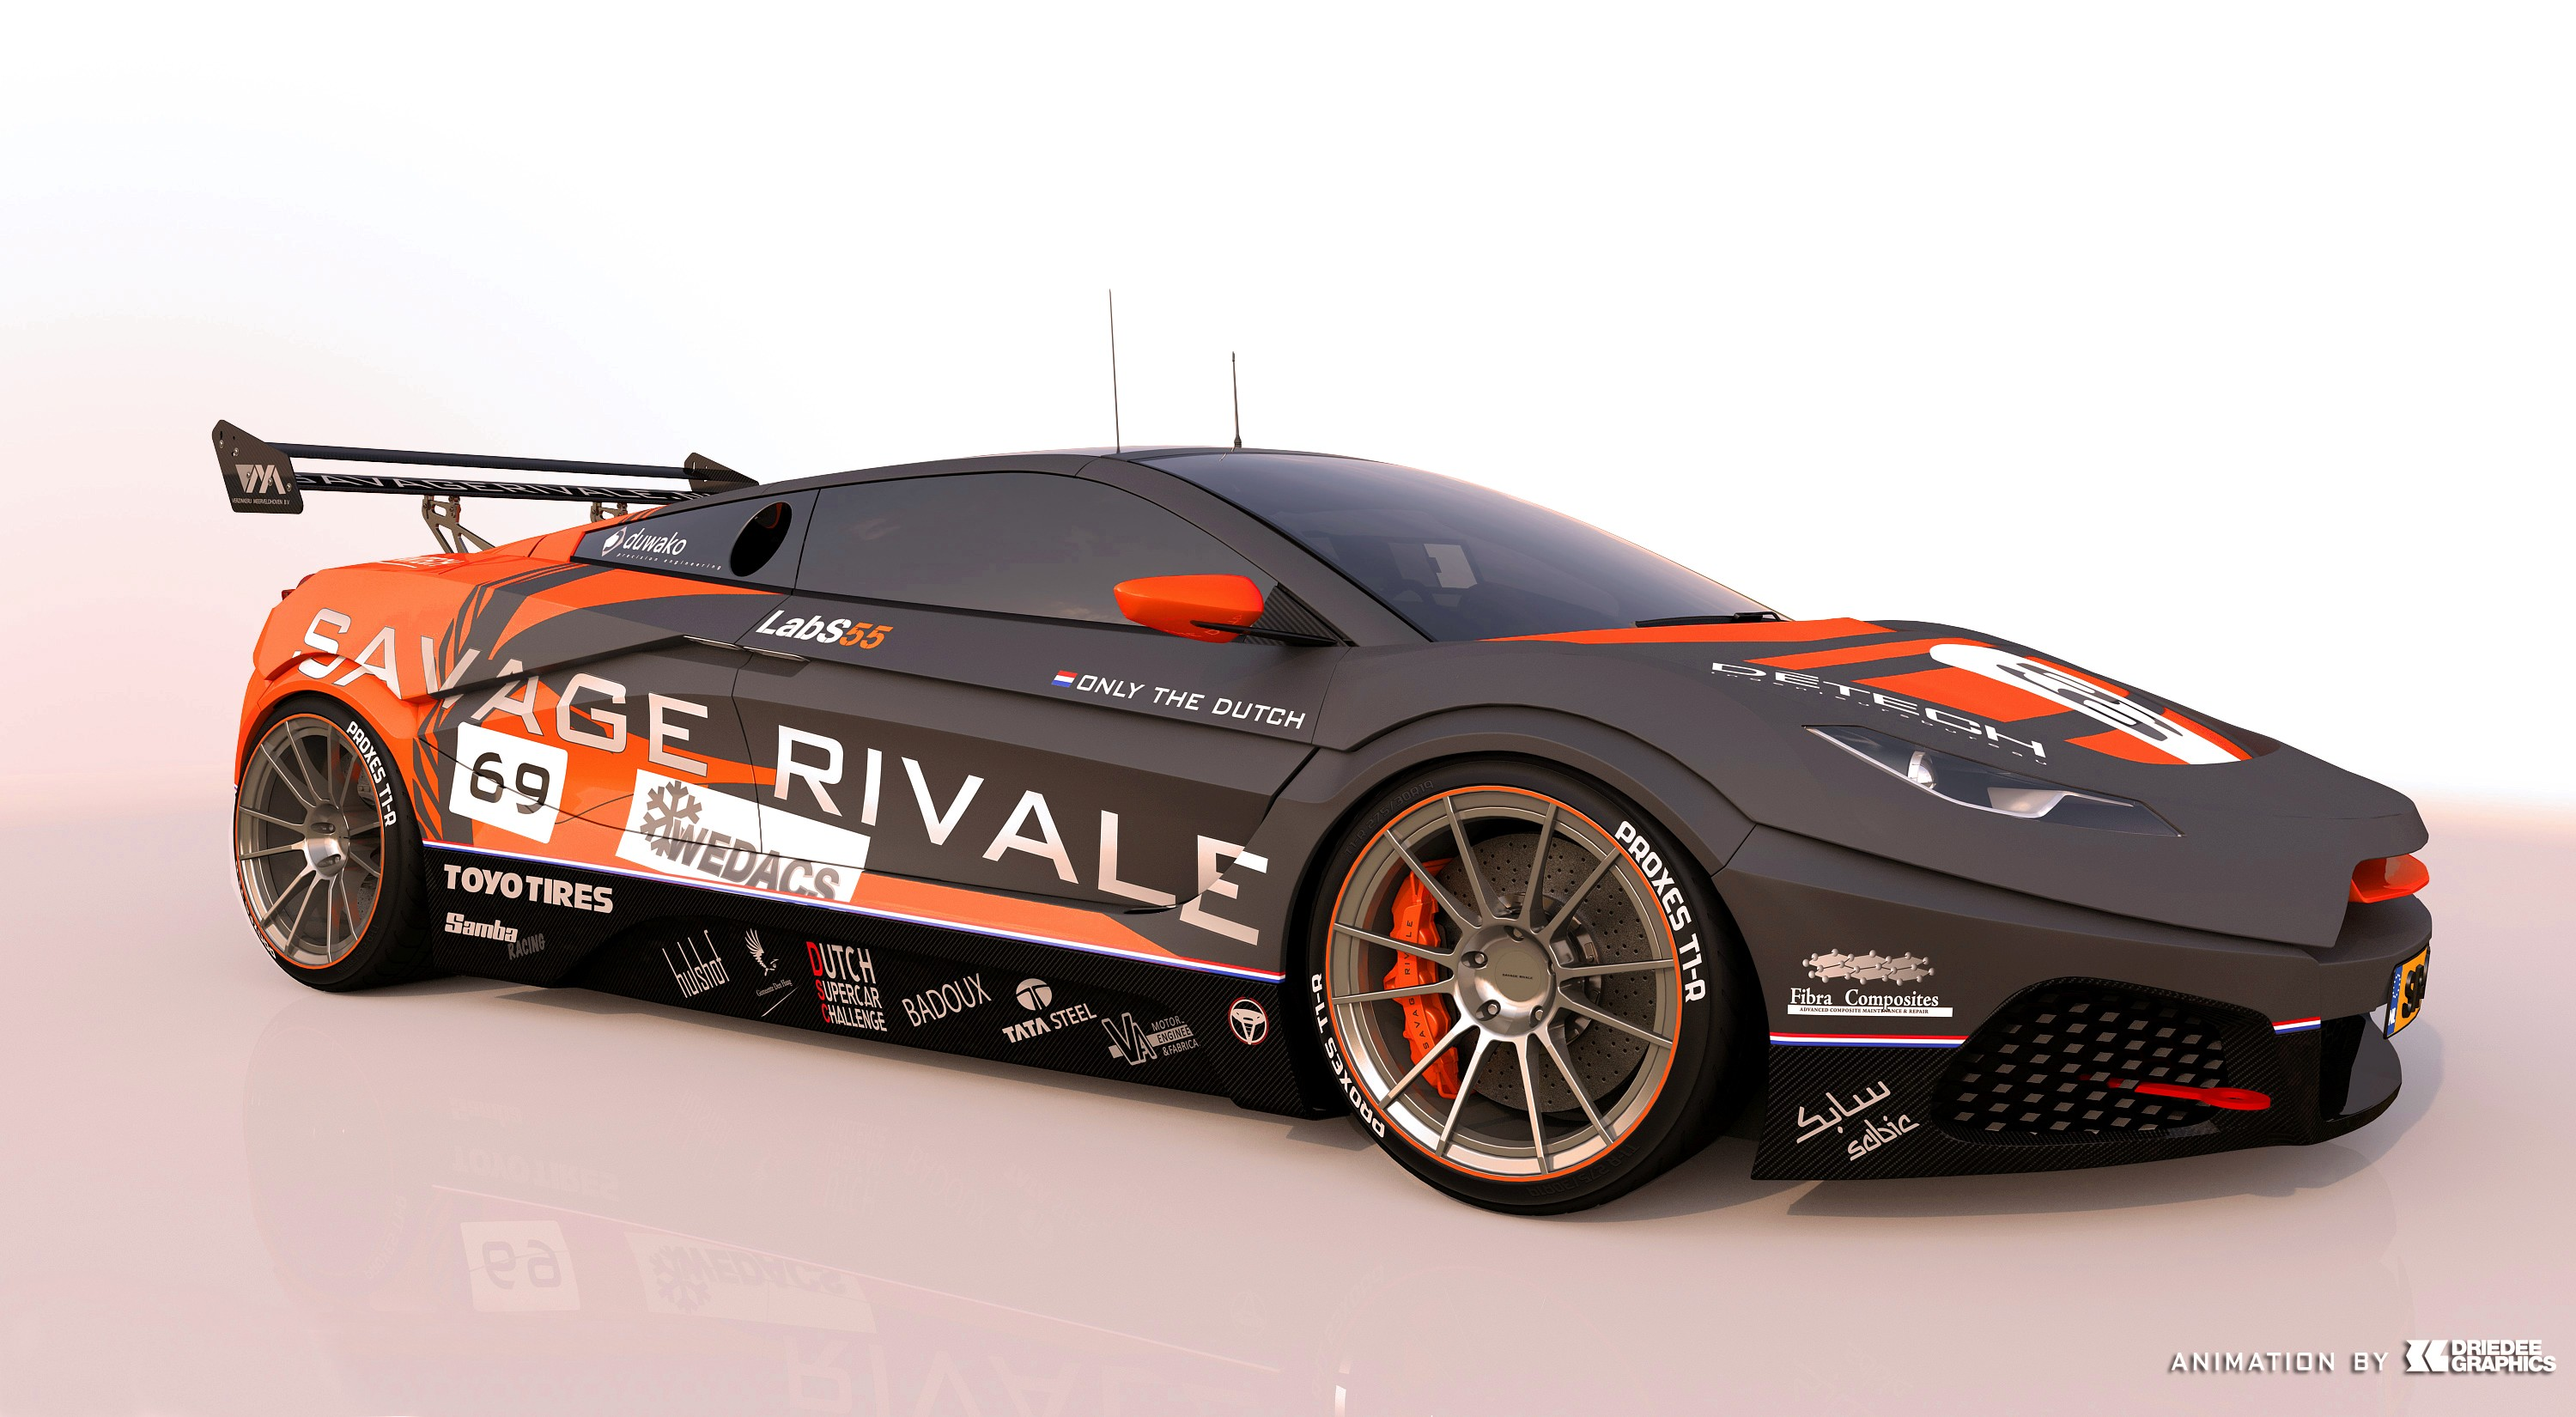 2012 Savage Rivale Gtr Unveiled